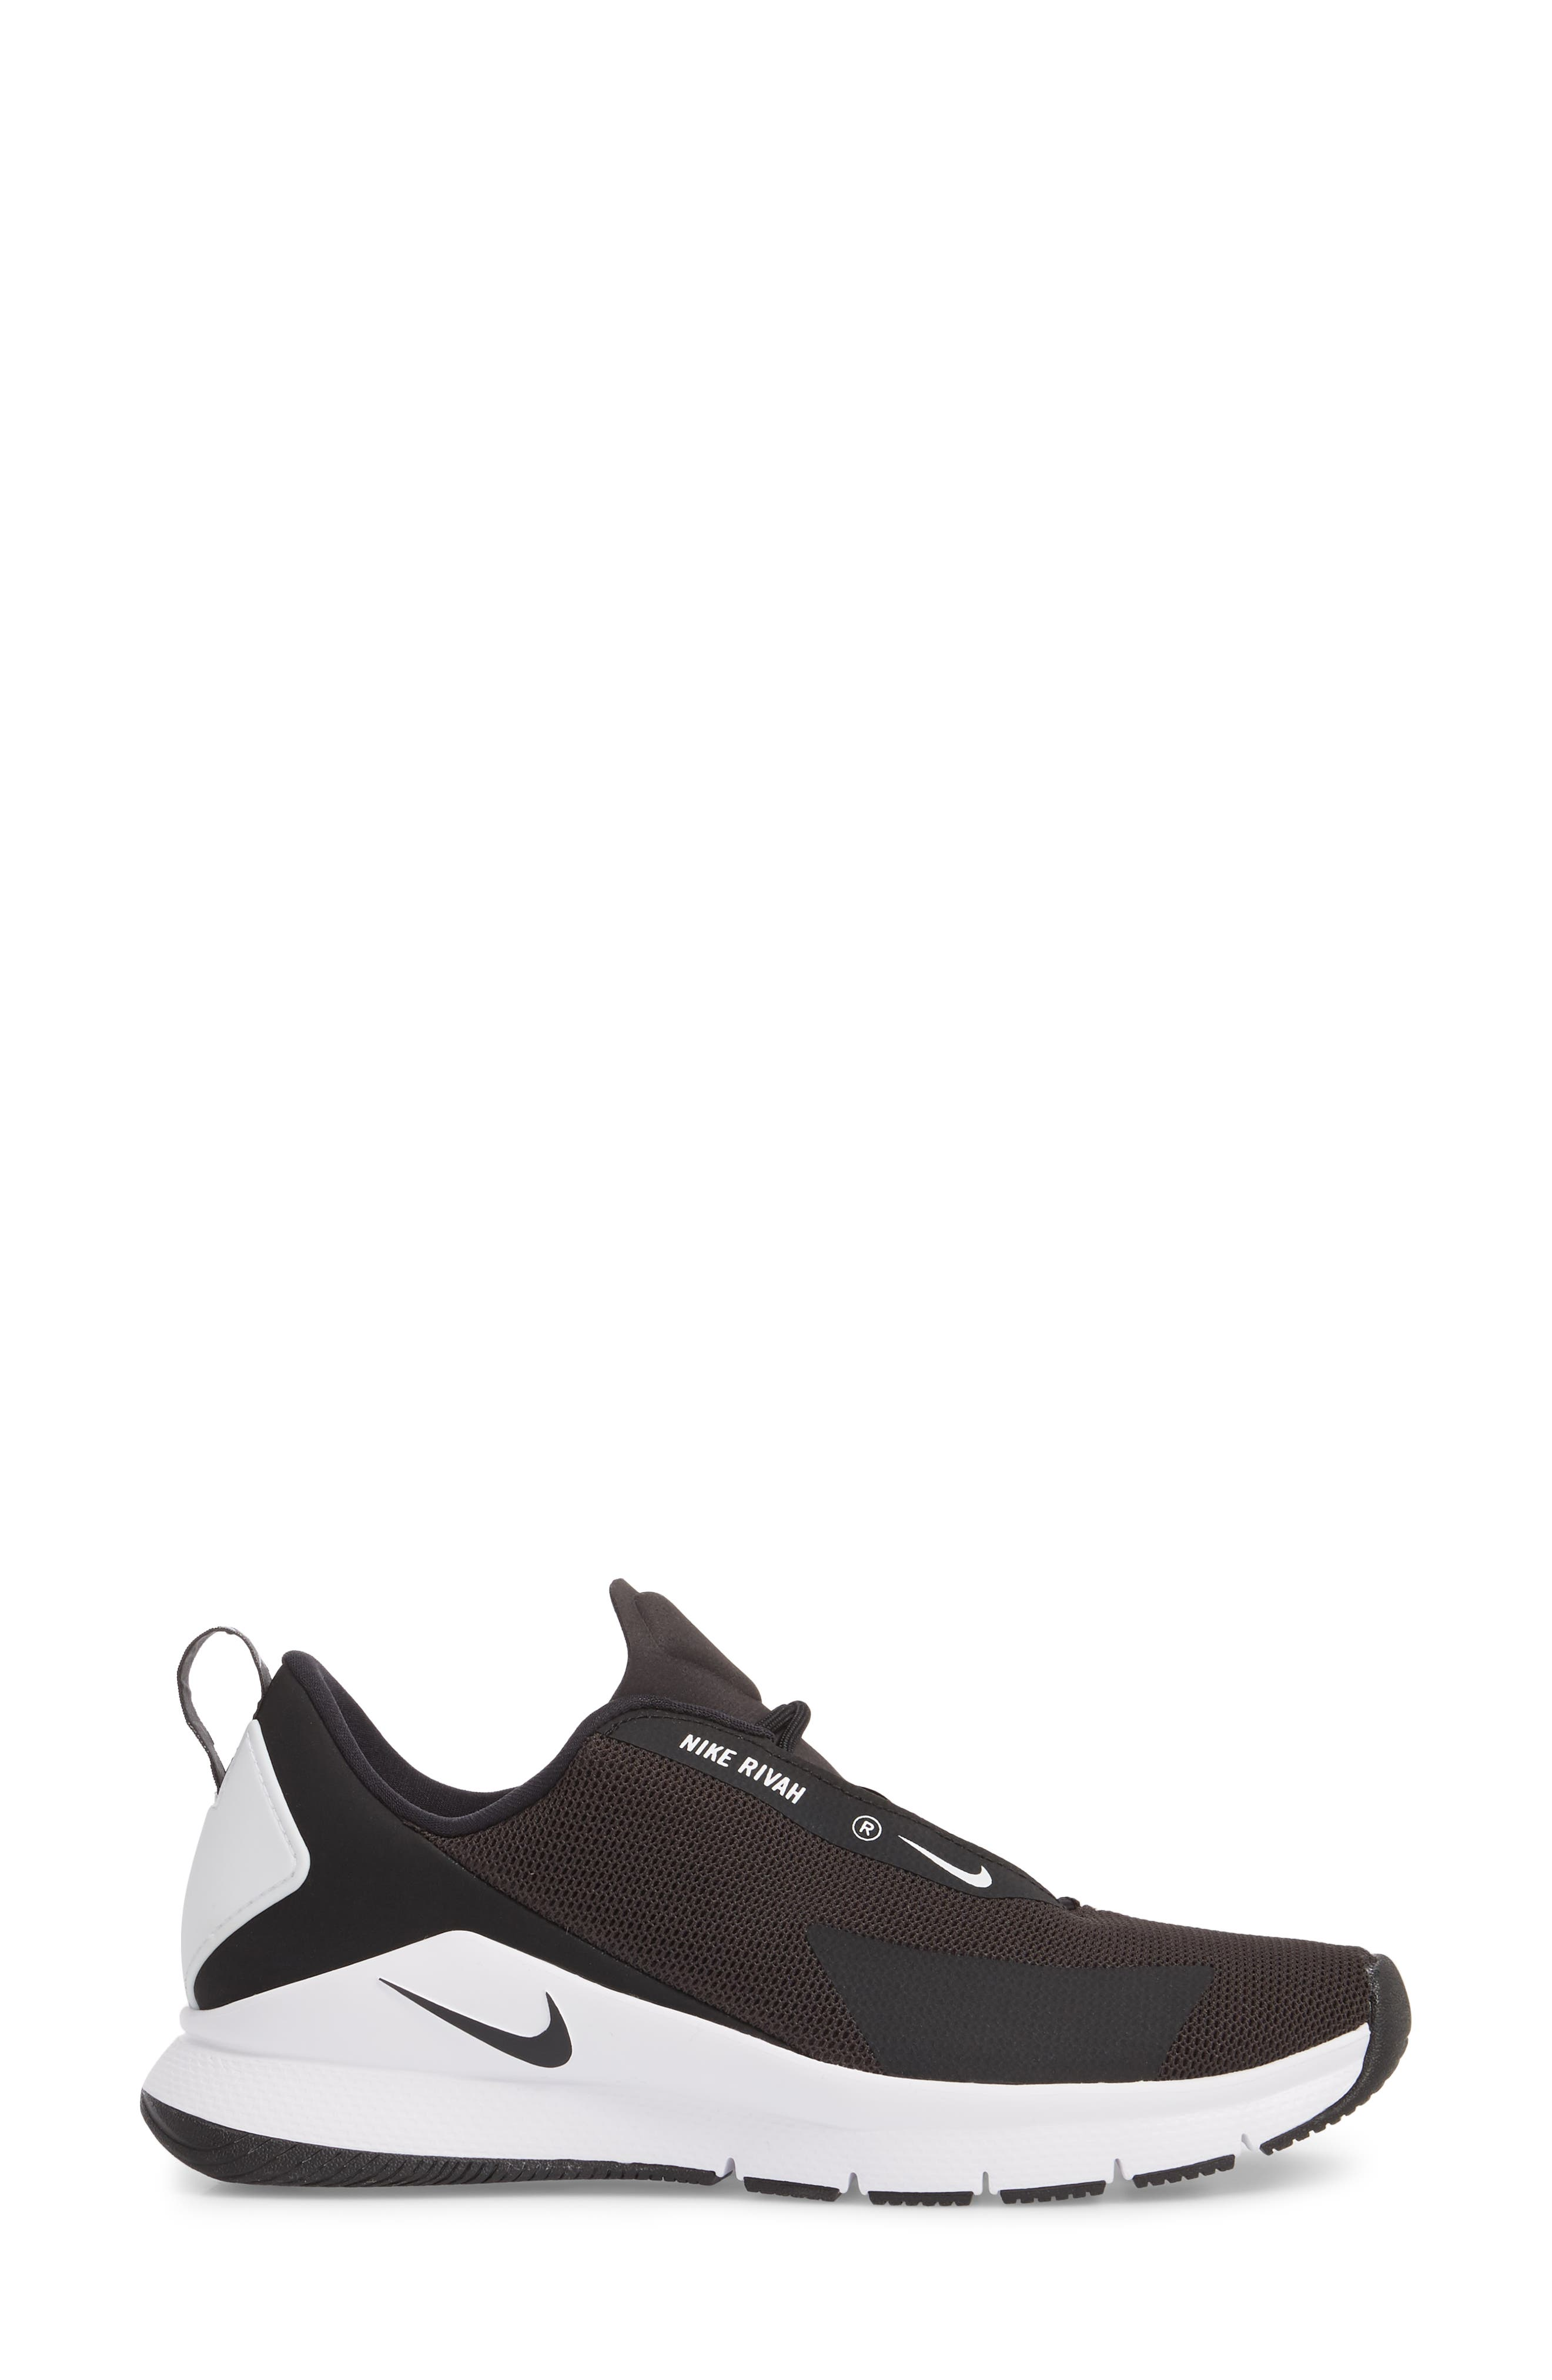 Rivah Sneaker,                             Alternate thumbnail 3, color,                             Black/ Black/ White